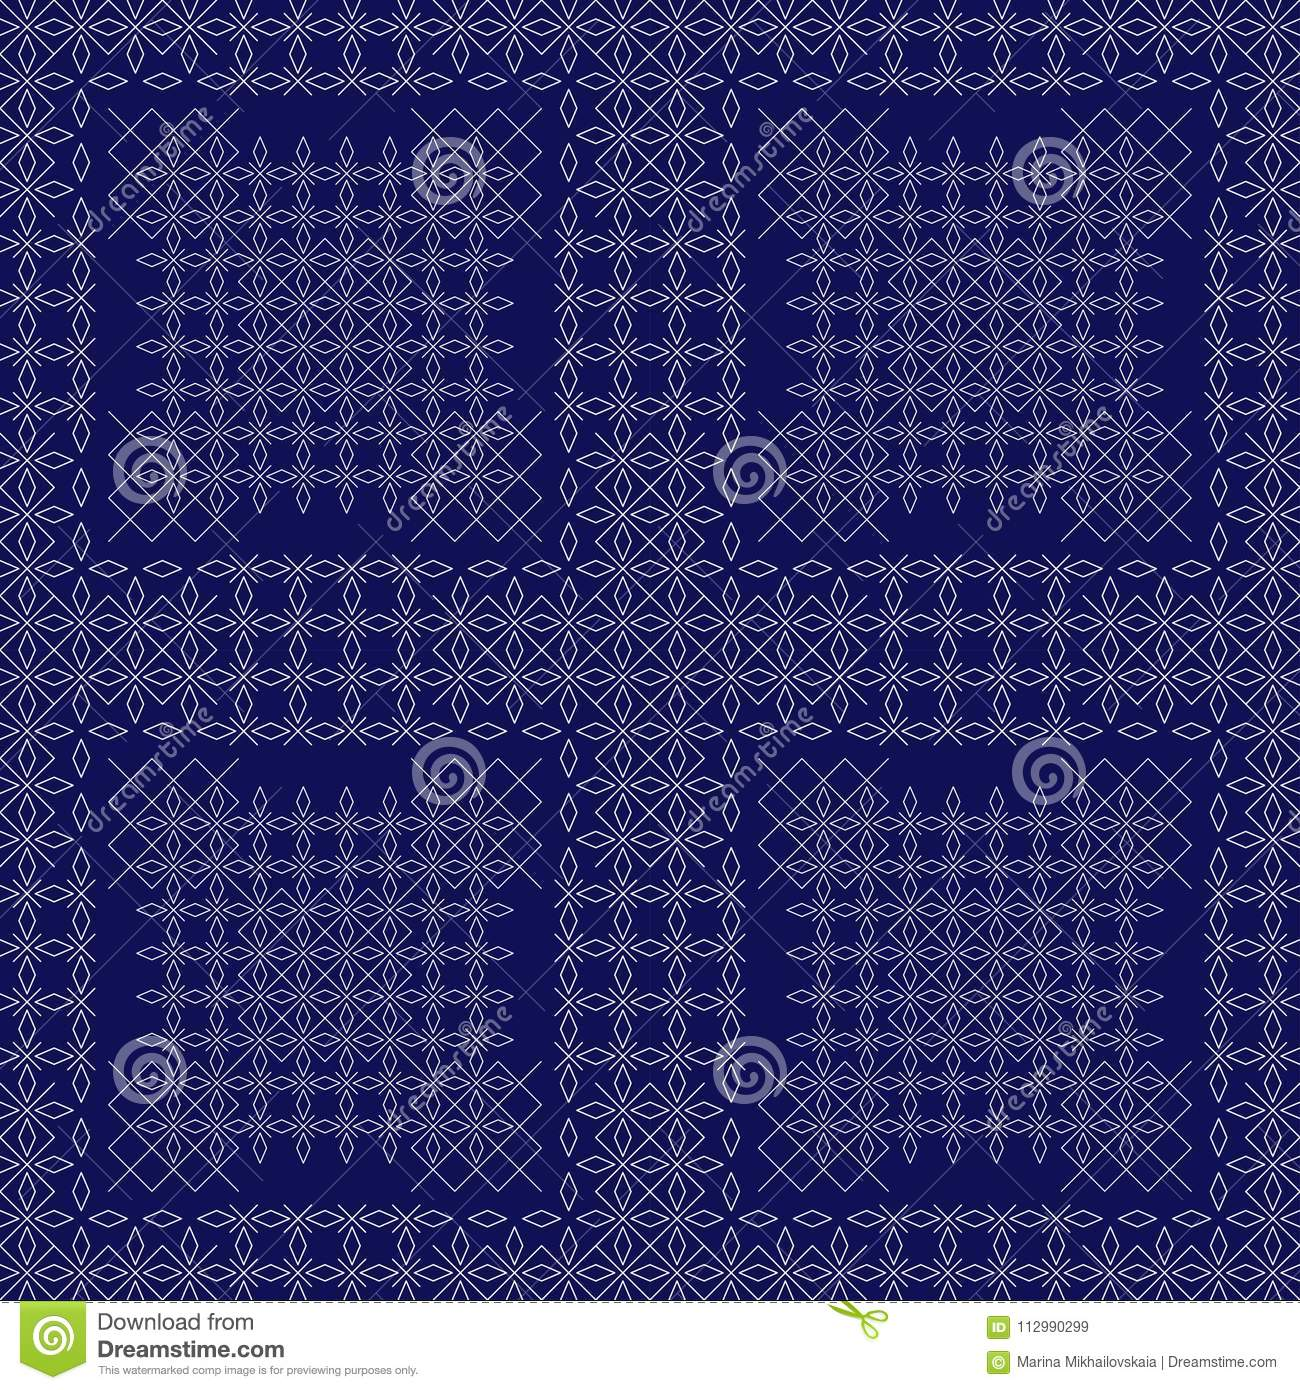 A geometric pattern of crosses and rhombuses on a blue background.